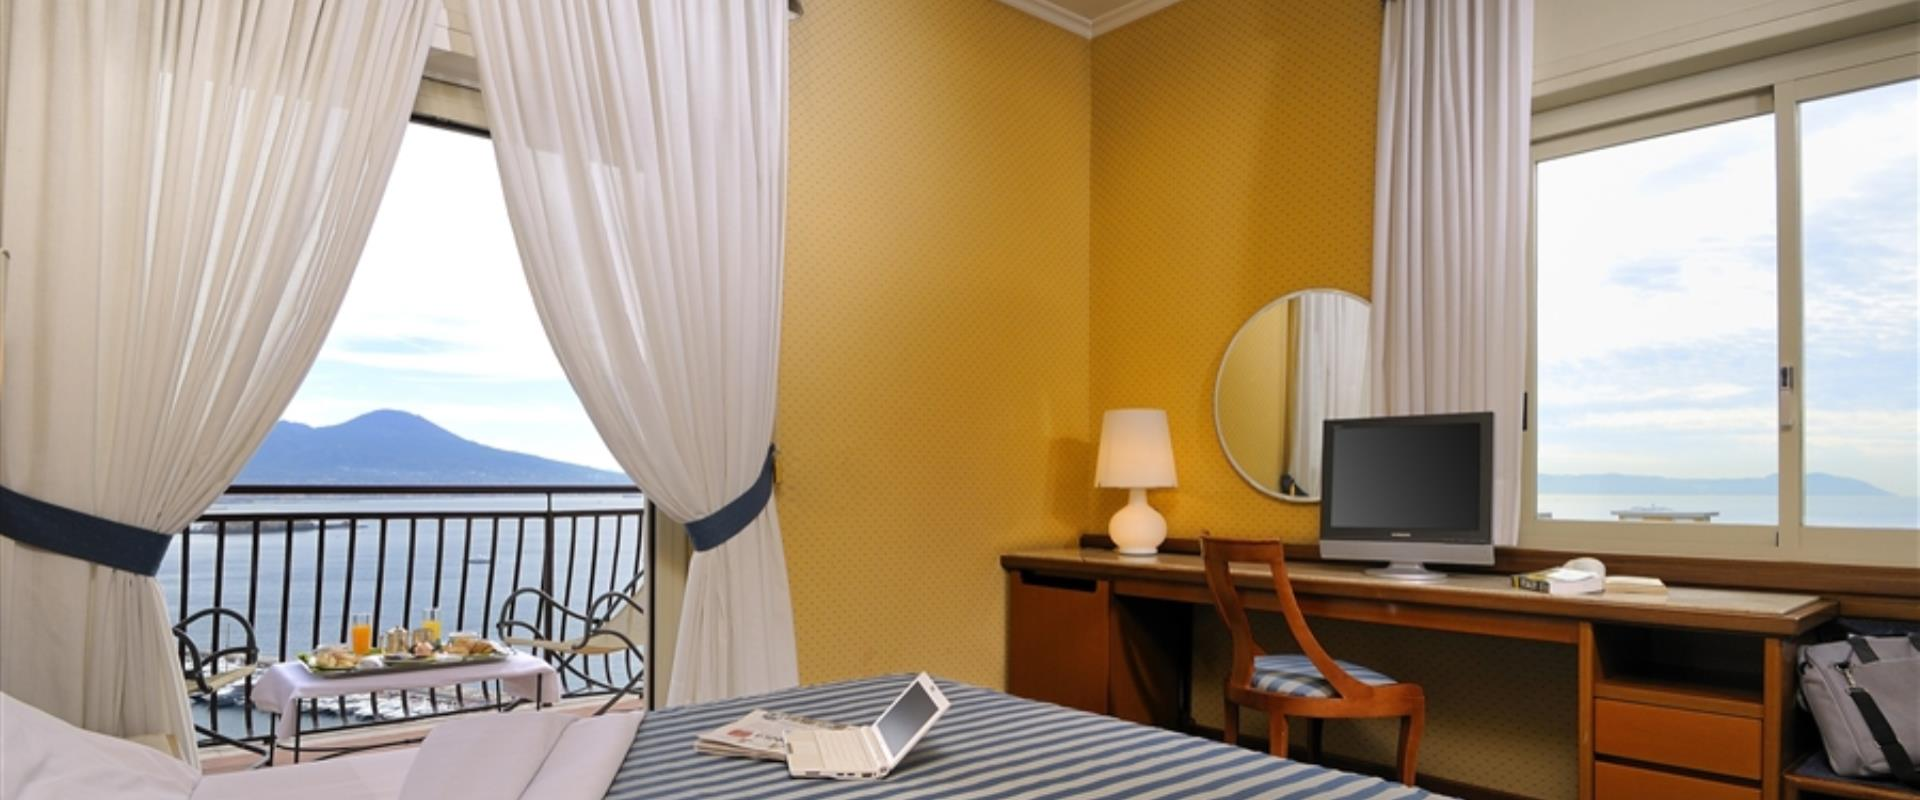 Book/reserve a room in Napoli, stay at the BW Signature Collection Hotel Paradiso